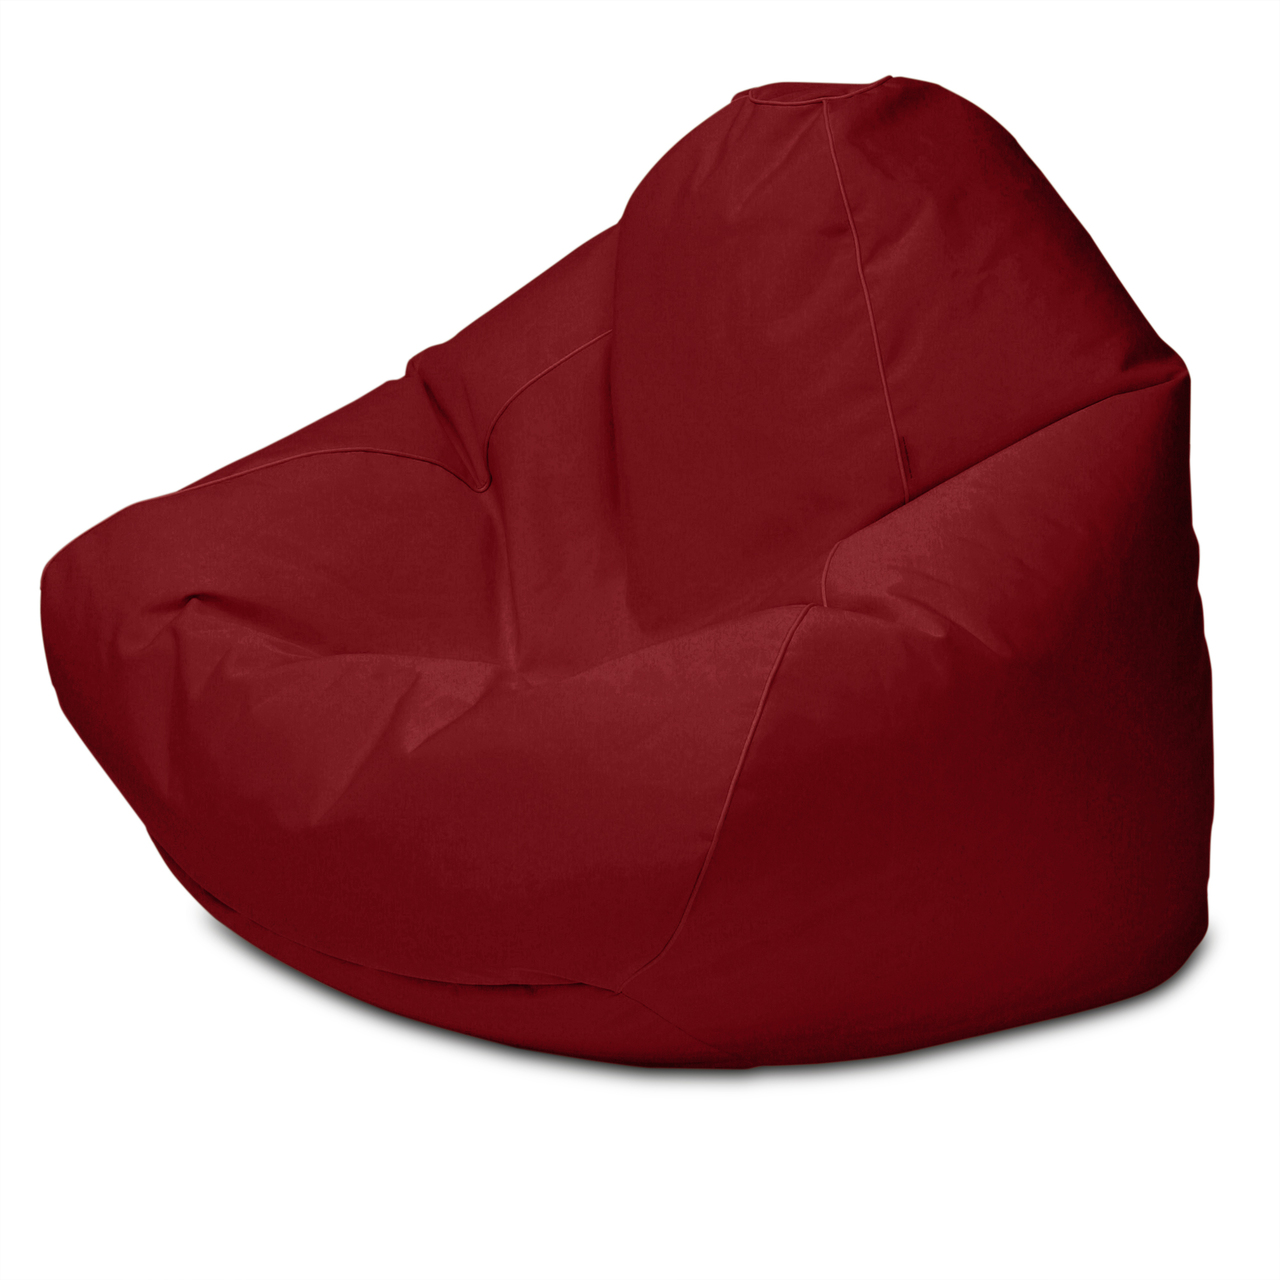 Sunbrella Outdoor Queen Size Bean Bag in jockey red